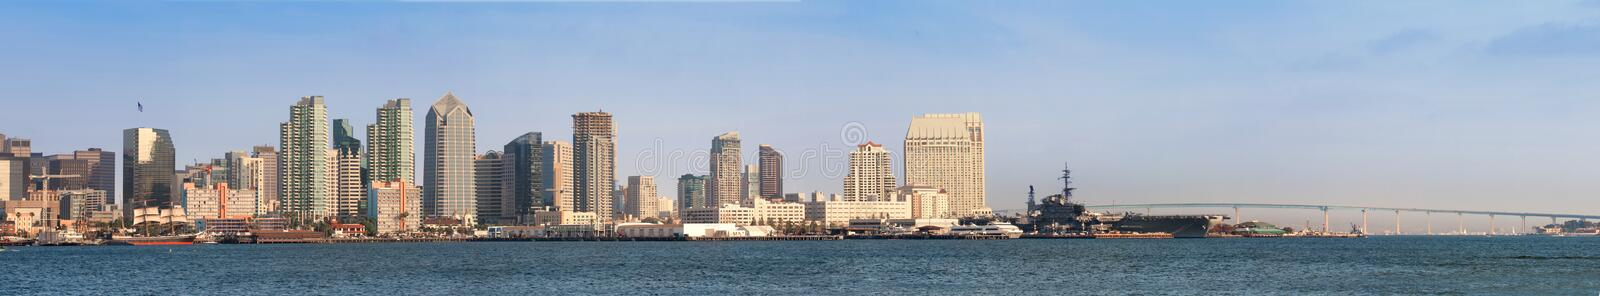 San Diego Bay royalty free stock image